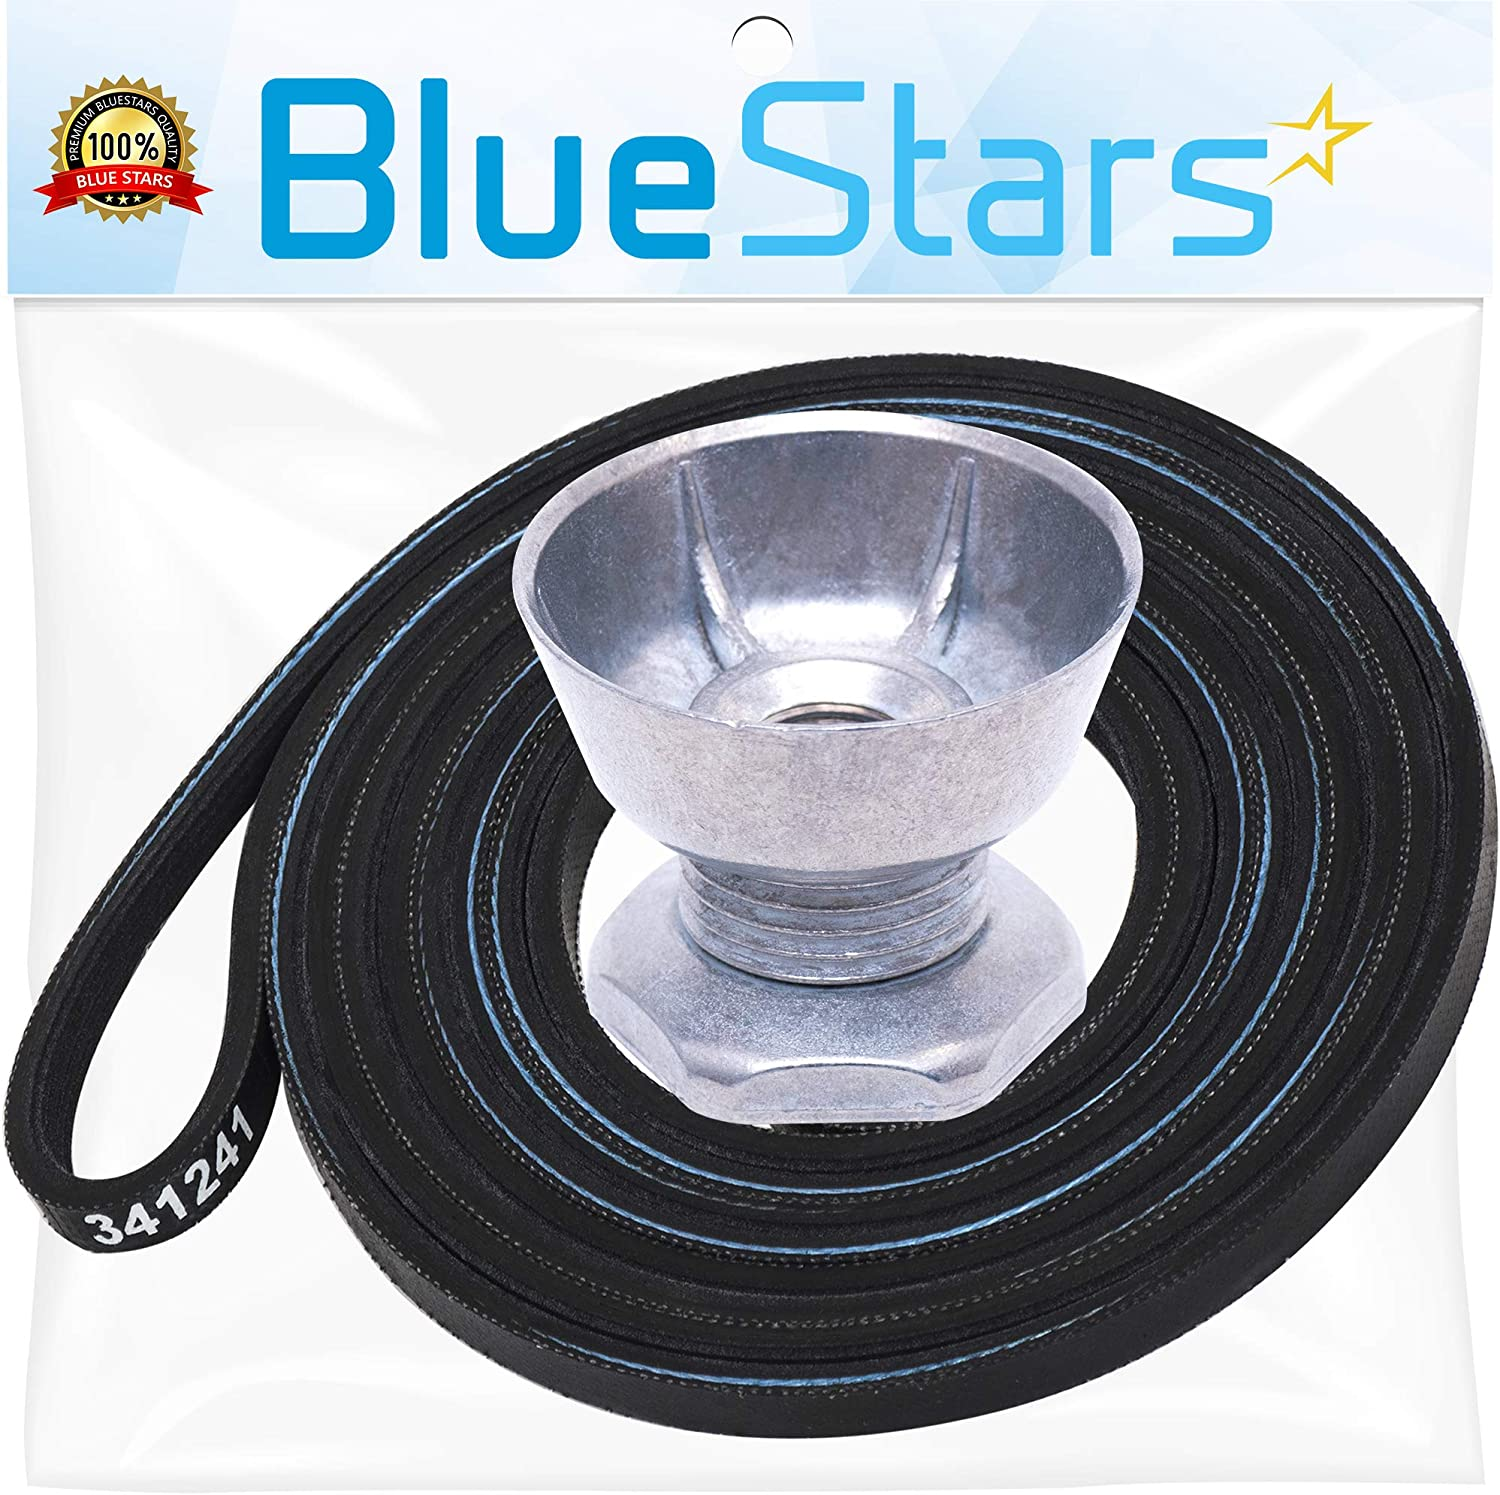 Ultra Durable 8066184 Dryer Motor Pulley & 341241 Dryer Drum Belt Kit Replacement by Blue Stars - Exact Fit for Whirlpool Maytag Kenmore Dryers - Replaces PS11744884 AP2946843